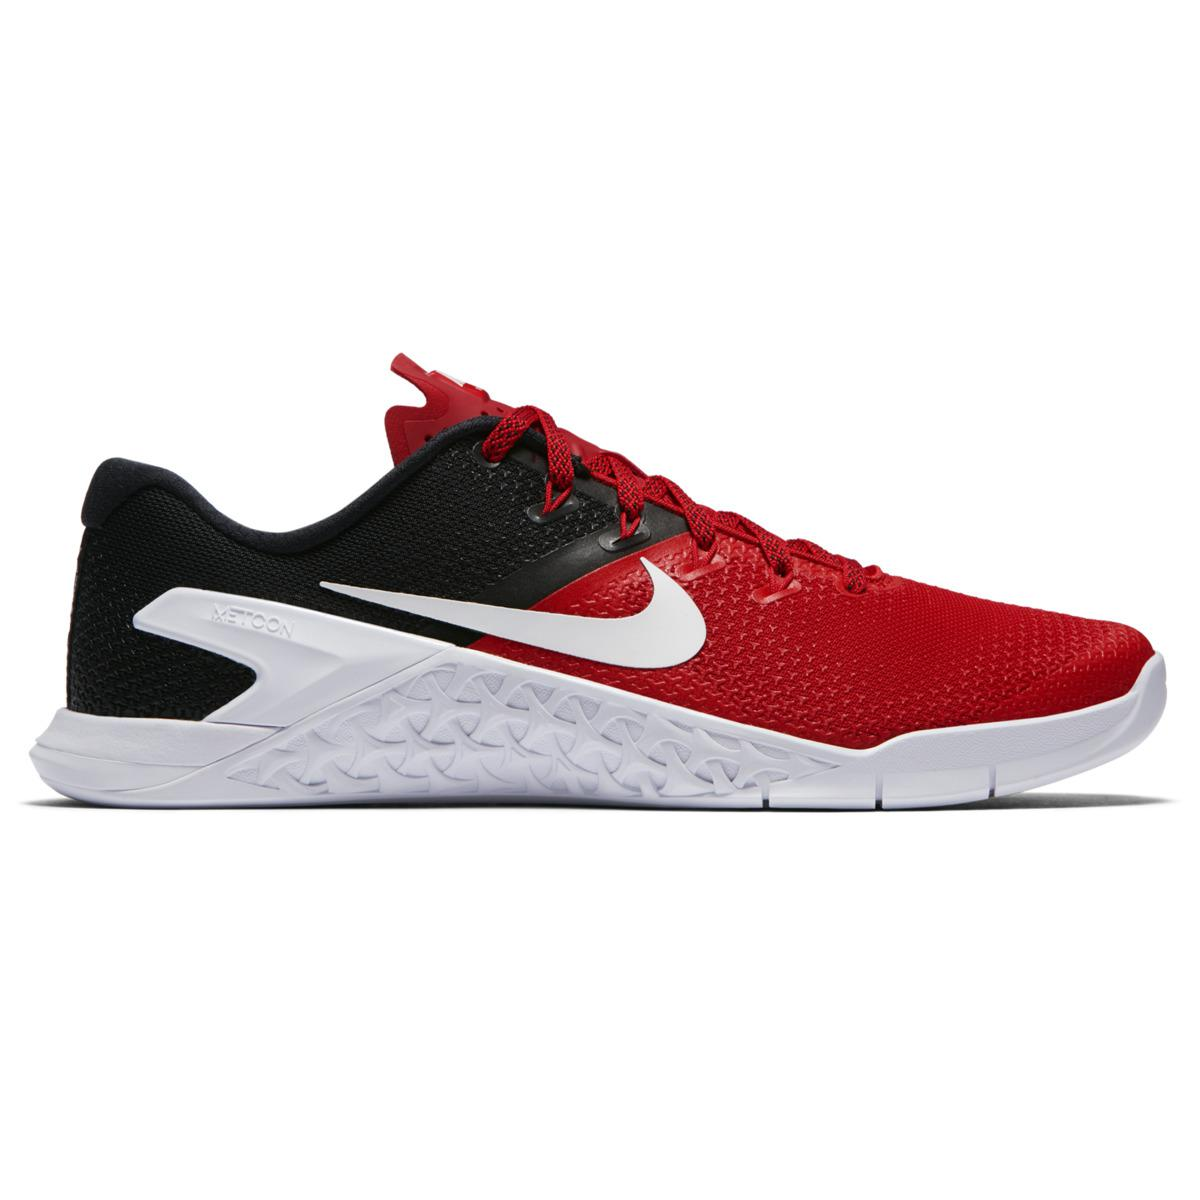 1d67701b5abe3 Nike Metcon 4 Training Shoes in Red for Men - Lyst